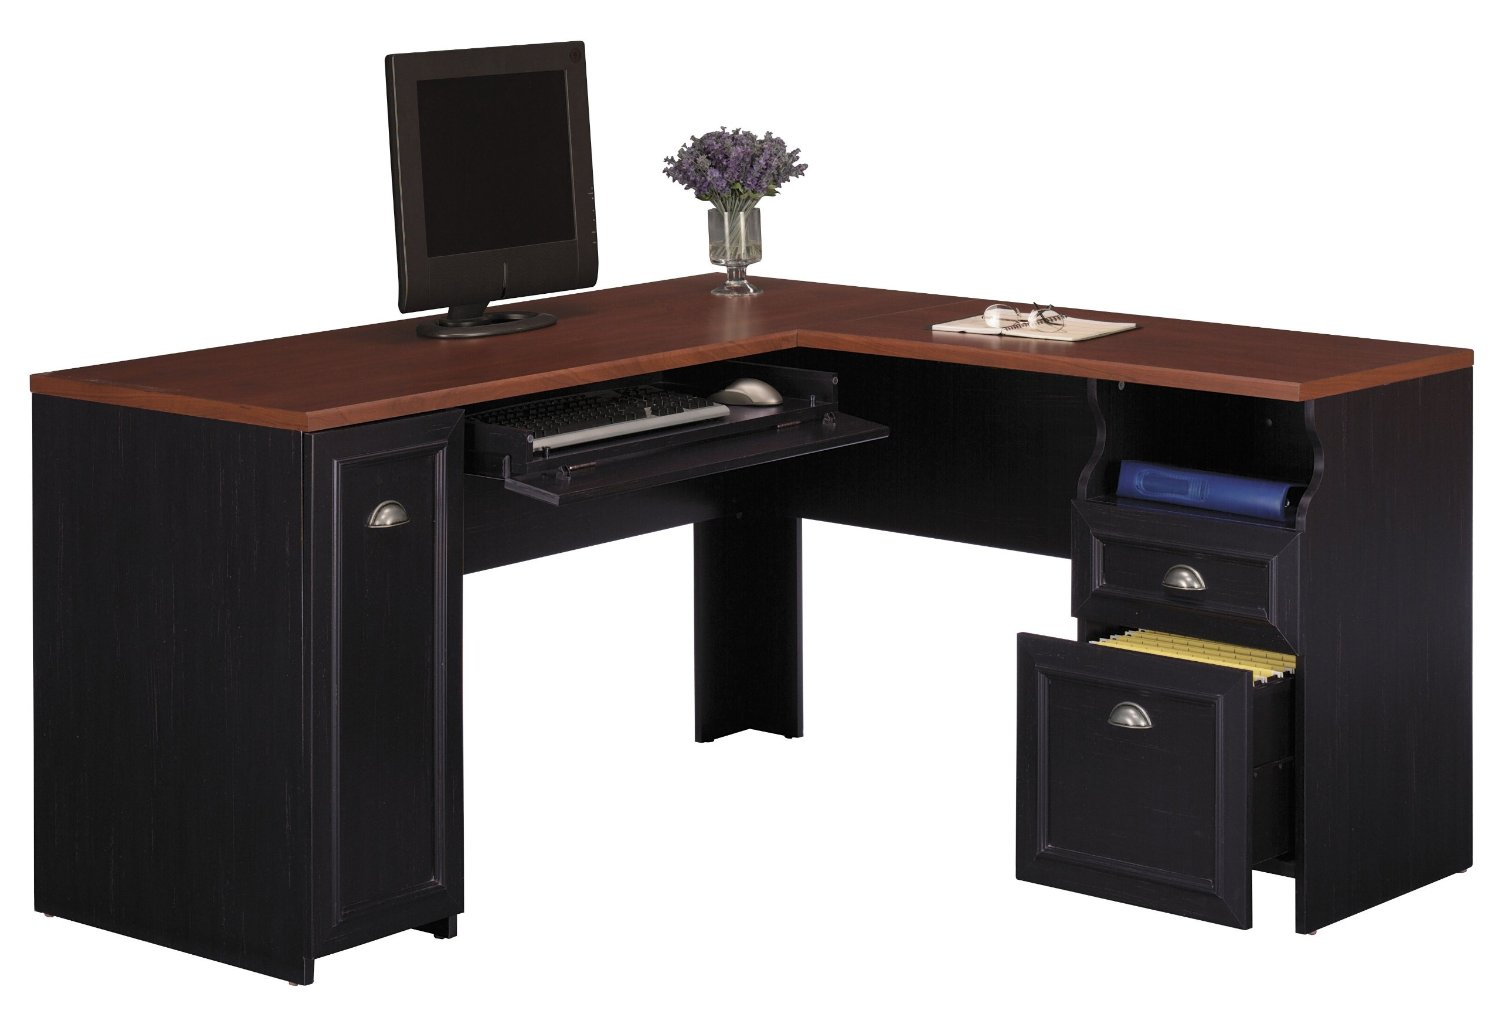 Home office furniture corner desk innovation - Home office corner desk furniture ...